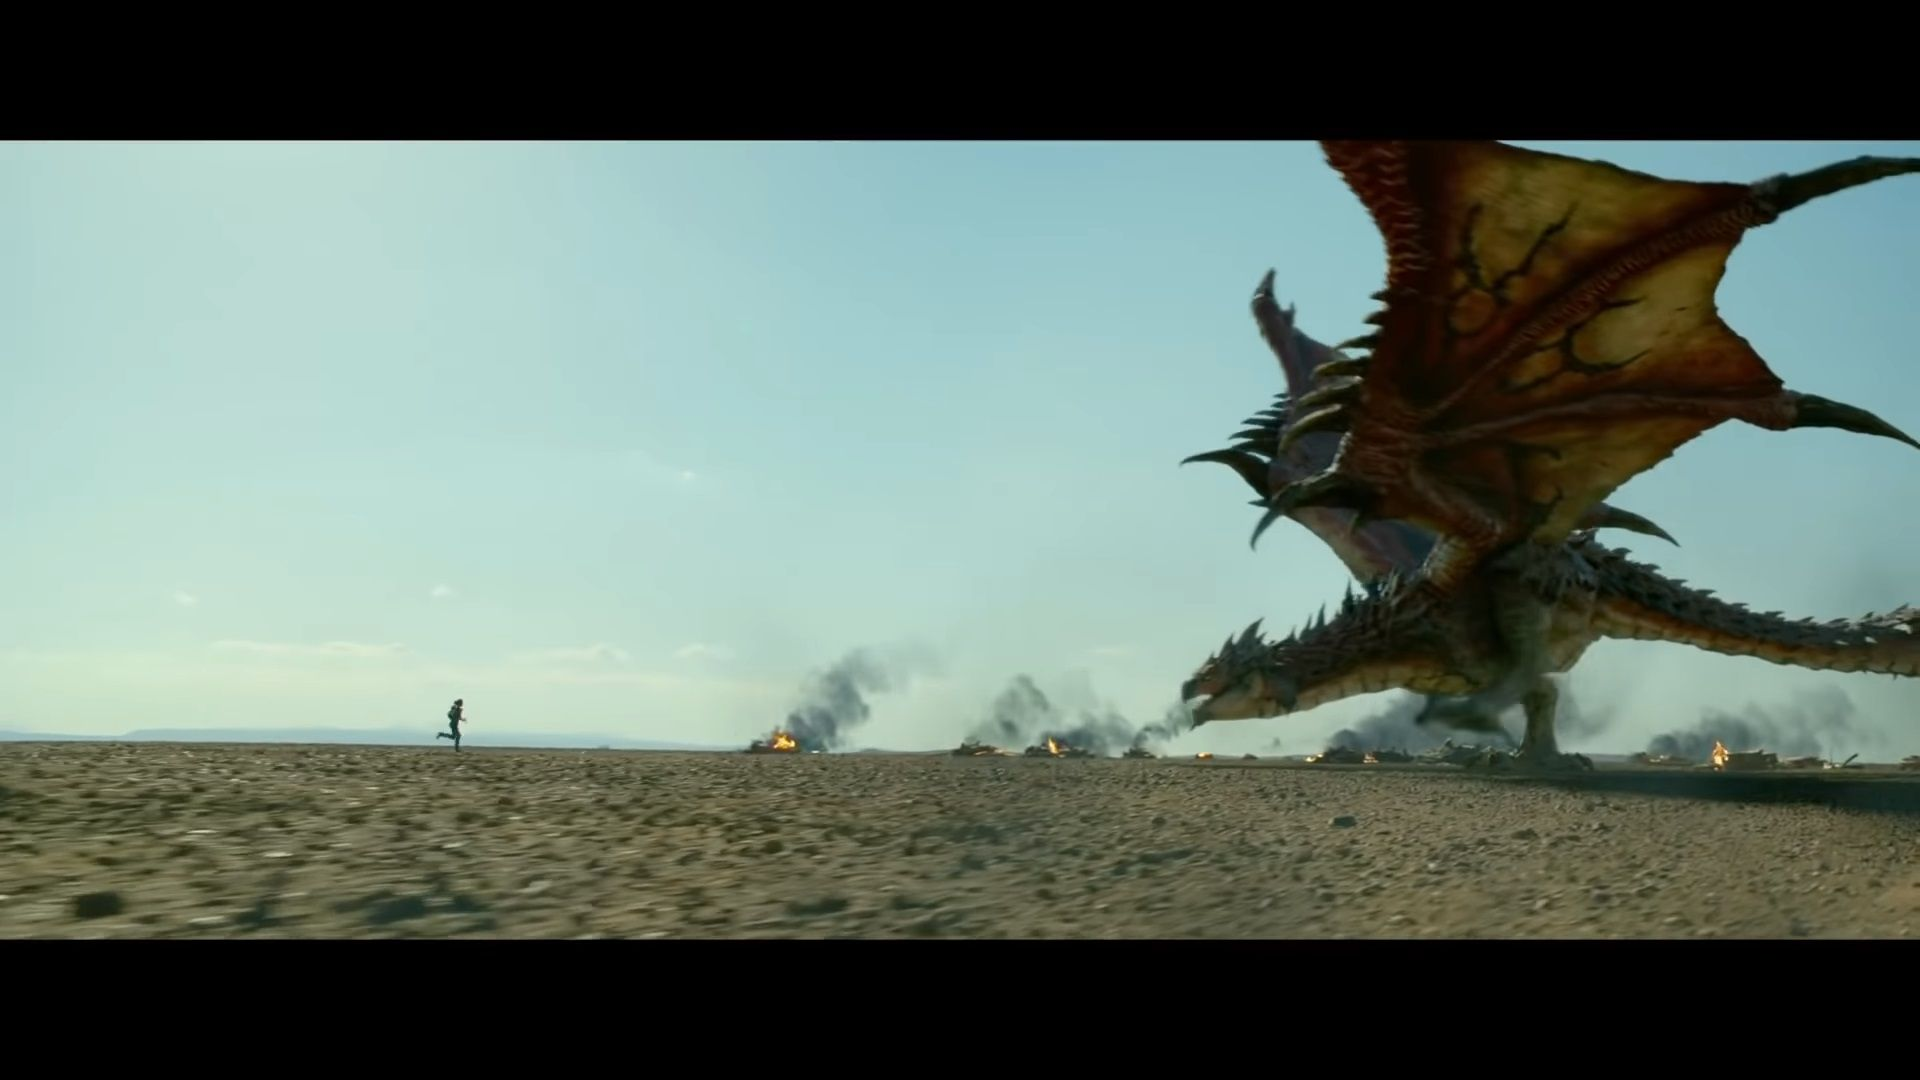 WATCH: Monster Hunter movie trailer features monsters Rathalos and Diablos